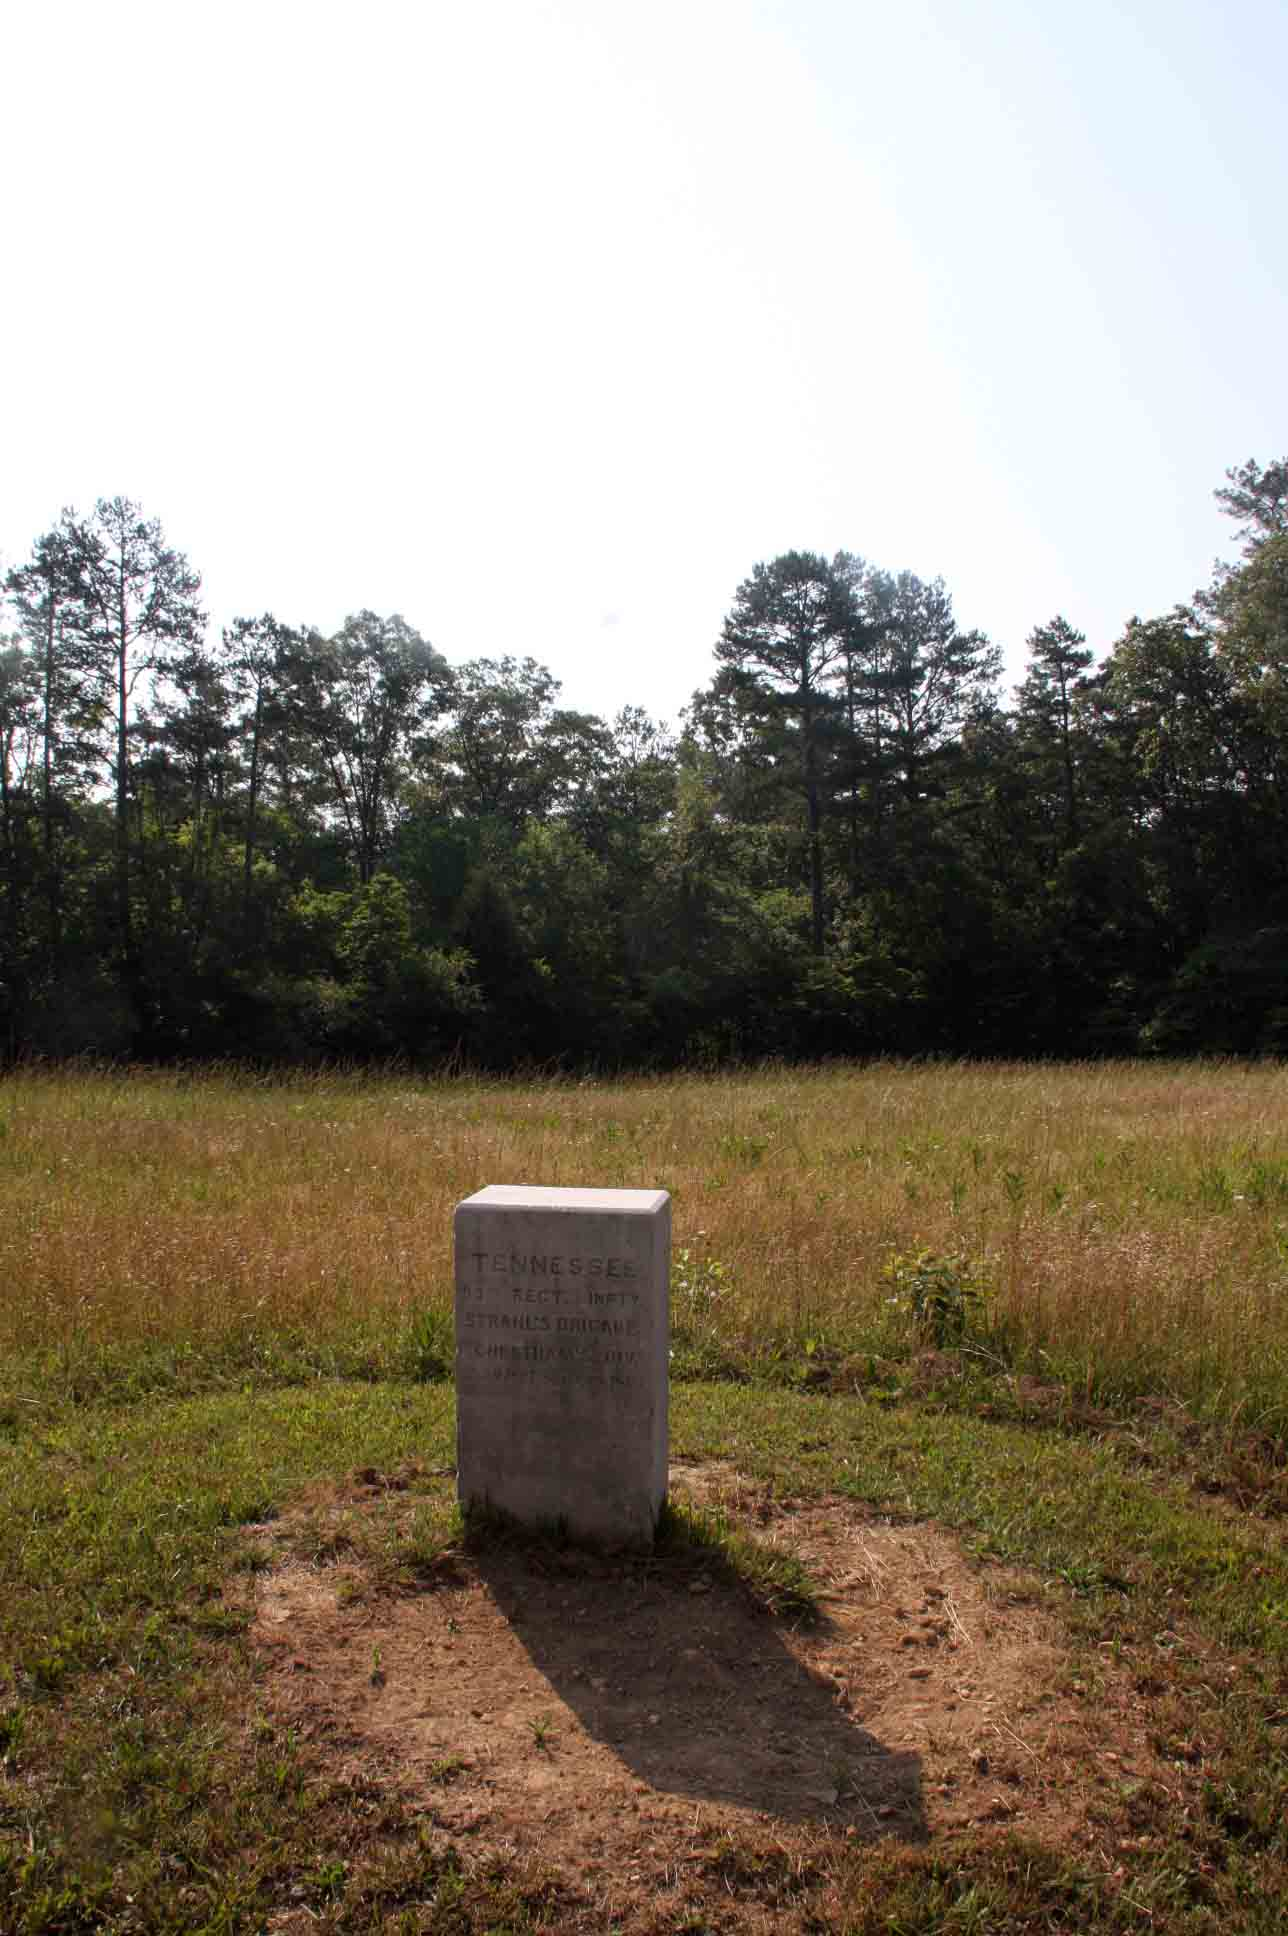 33rd Tennessee Infantry Regiment Marker, click photo to enlarge.